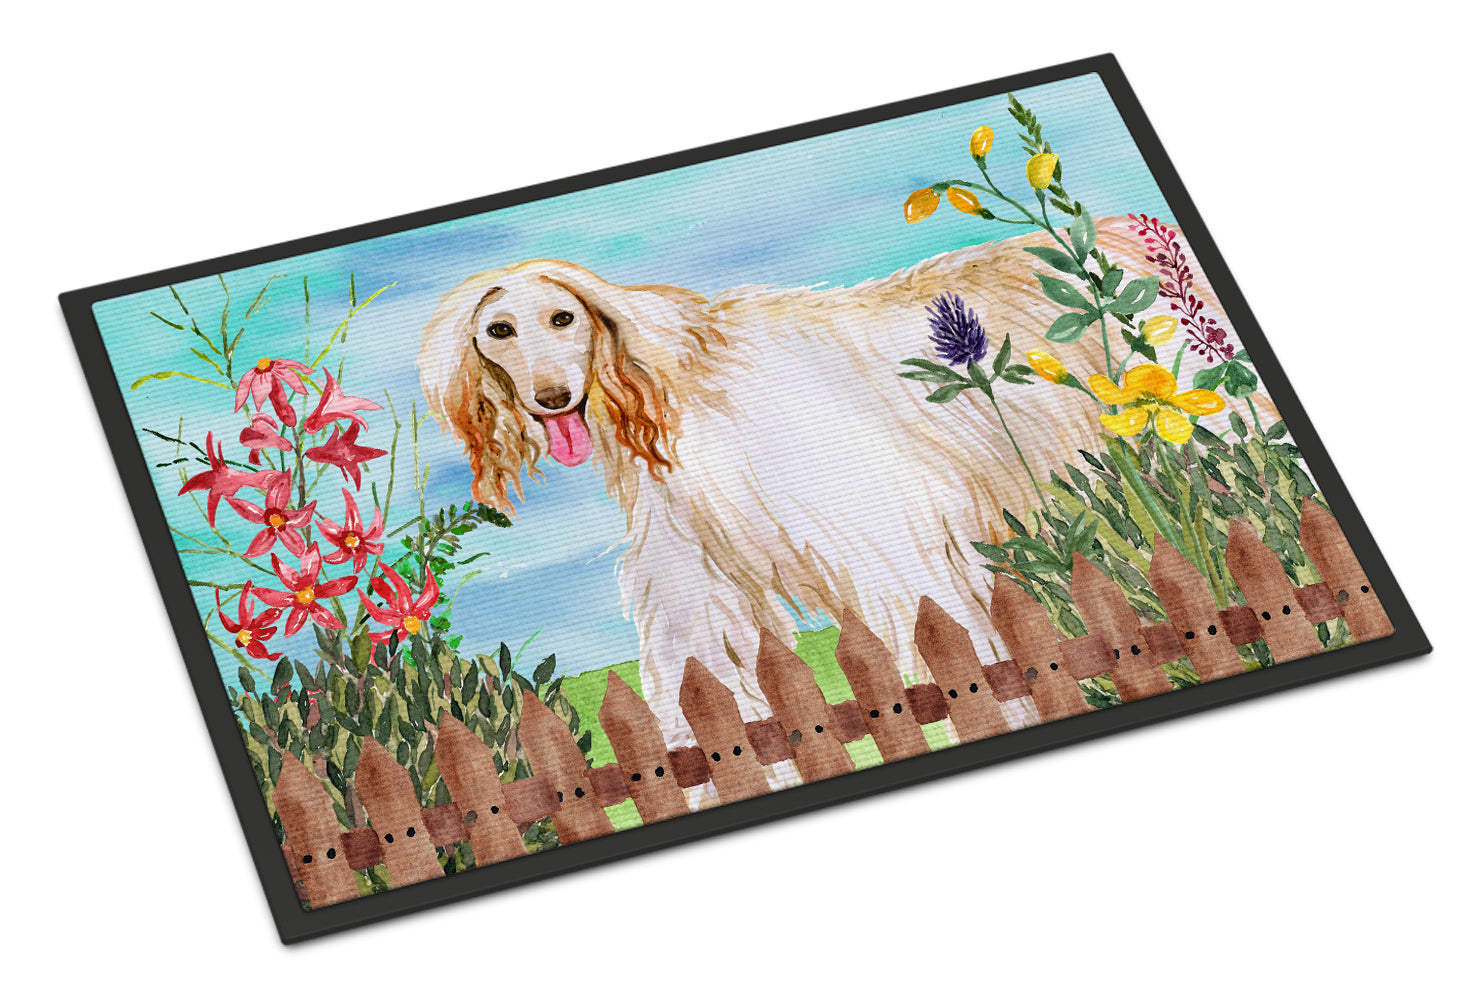 Afghan Hound Spring Indoor or Outdoor Mat 18x27 CK1264MAT by Caroline's Treasures